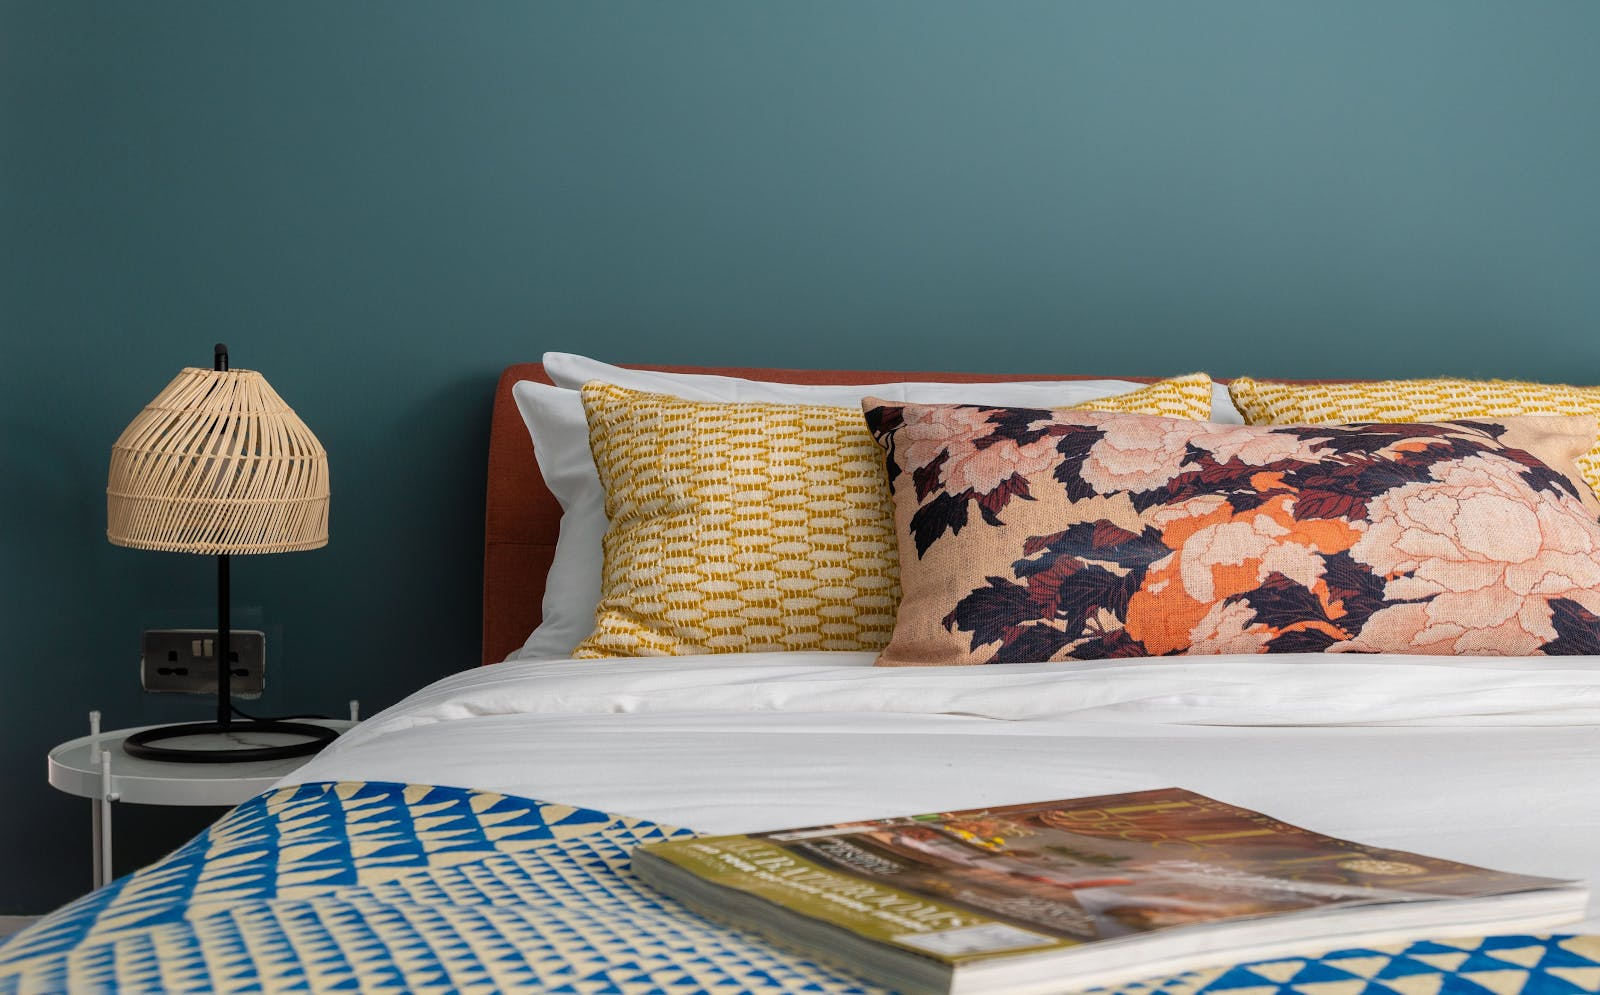 Bed with colourful floral cushions, Lick Green 04 painted walls, and a geometric throw